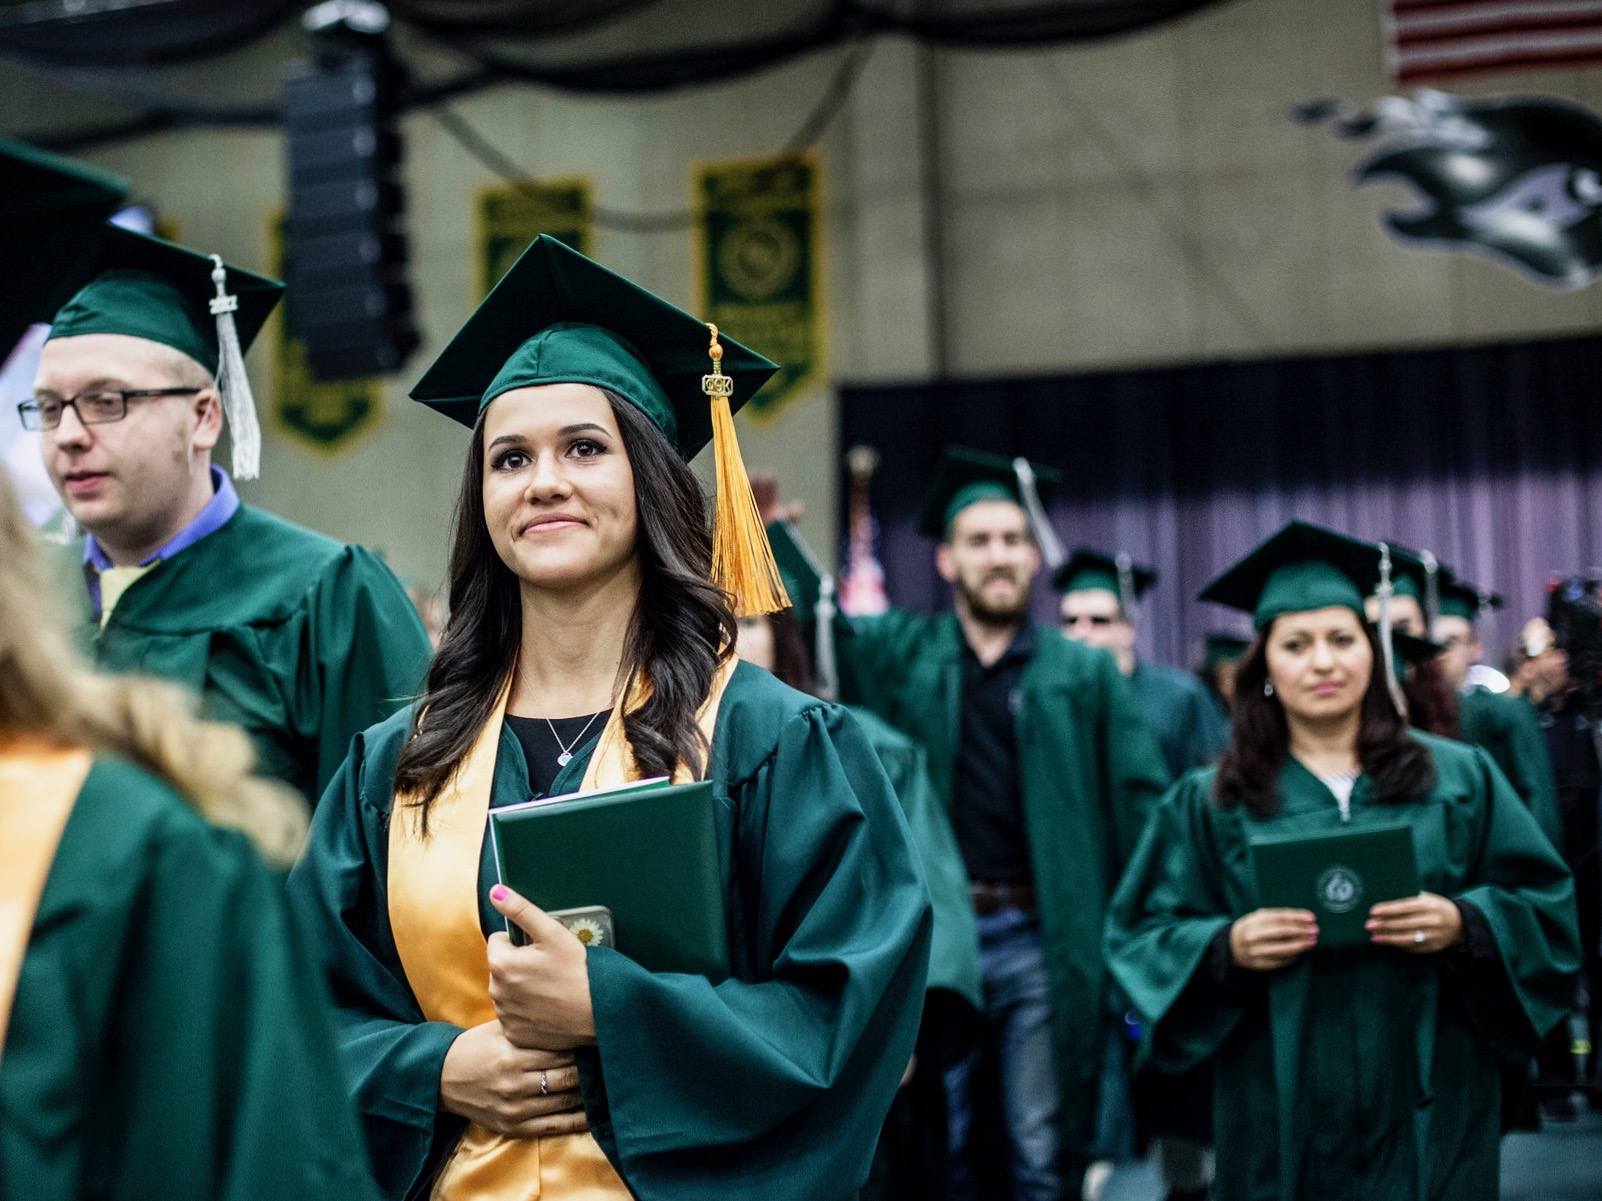 Graduates collect their diplomas at the 50th College of DuPage commencement two years ago. (Flickr/College of DuPage Newsroom)